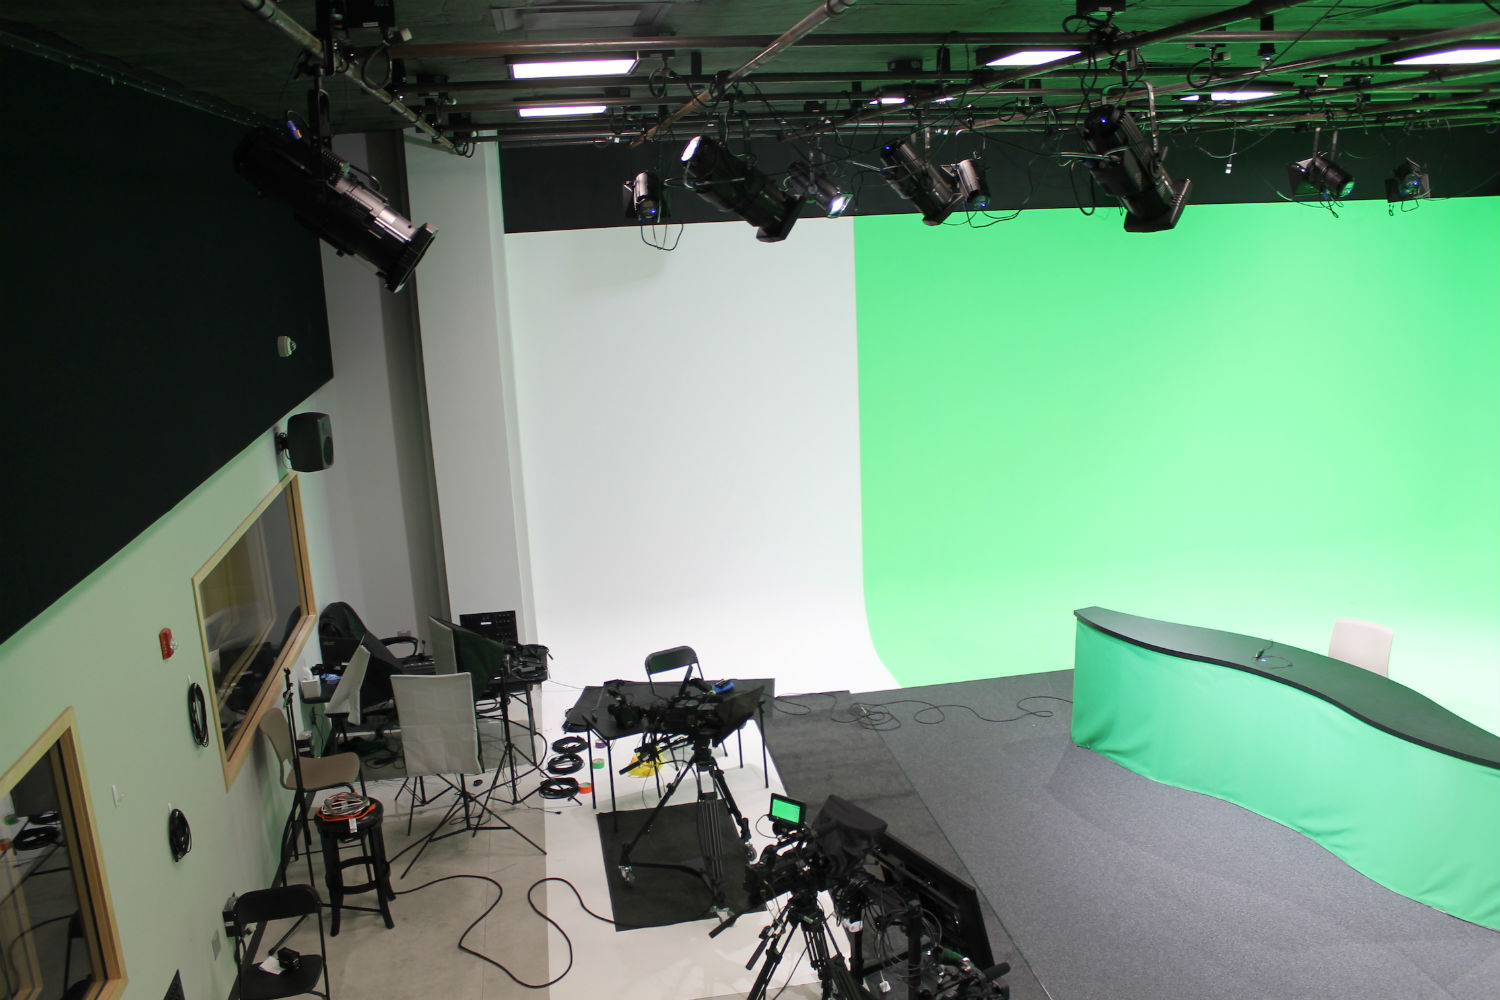 MJH Studios in NJ, designed by WSDG, is a world-class recording and production facility for the main use of creating audio and video healthcare-related content by MJH for their clients. Sound Stage with green walls